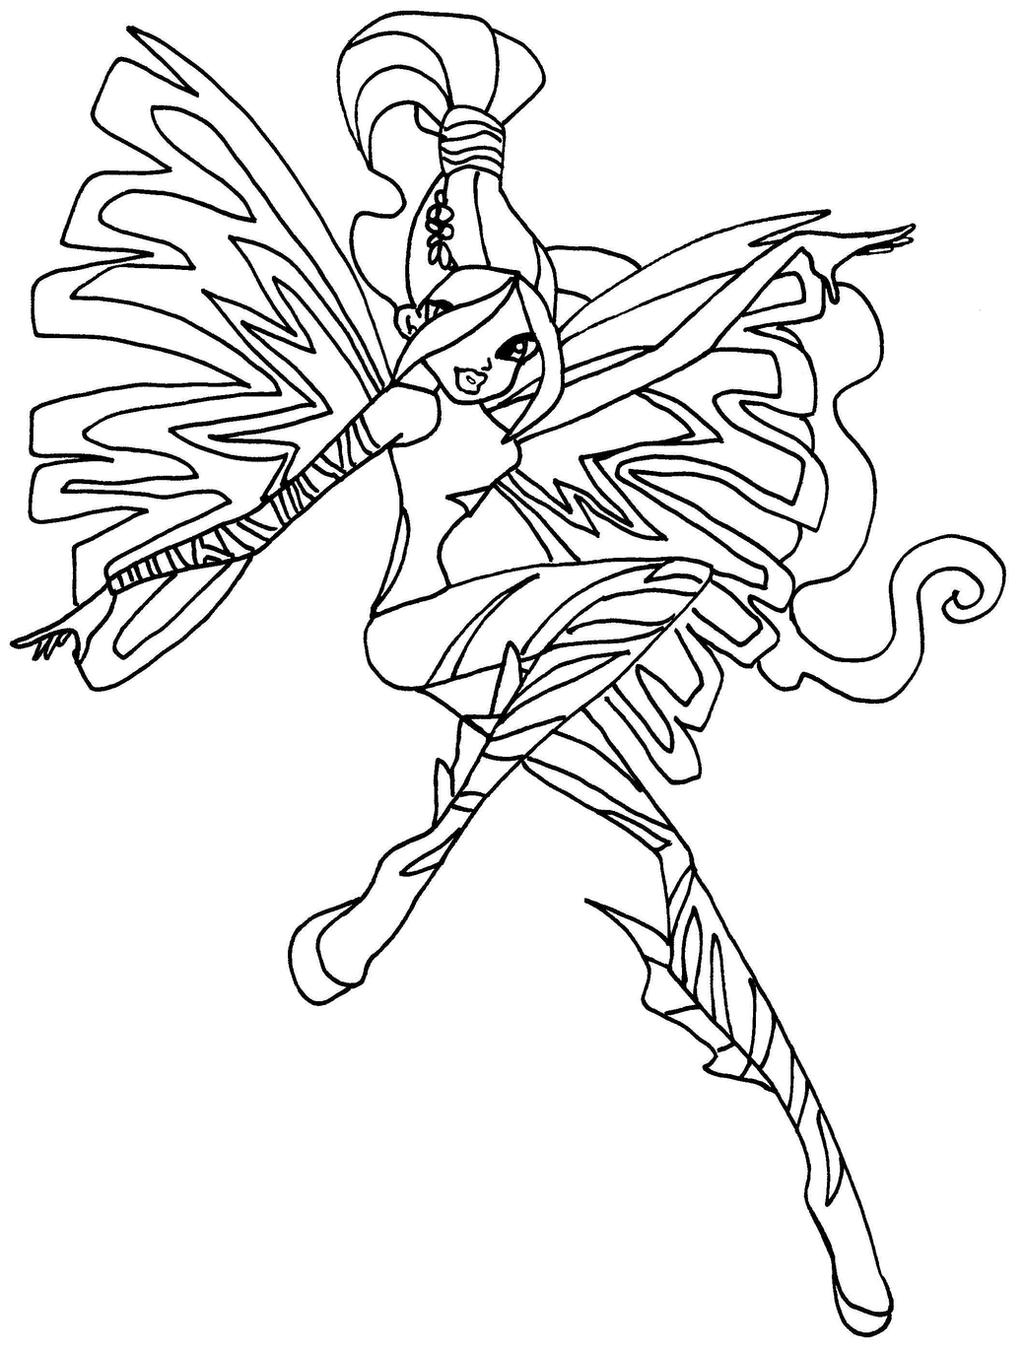 layla winx coloring pages - photo#27